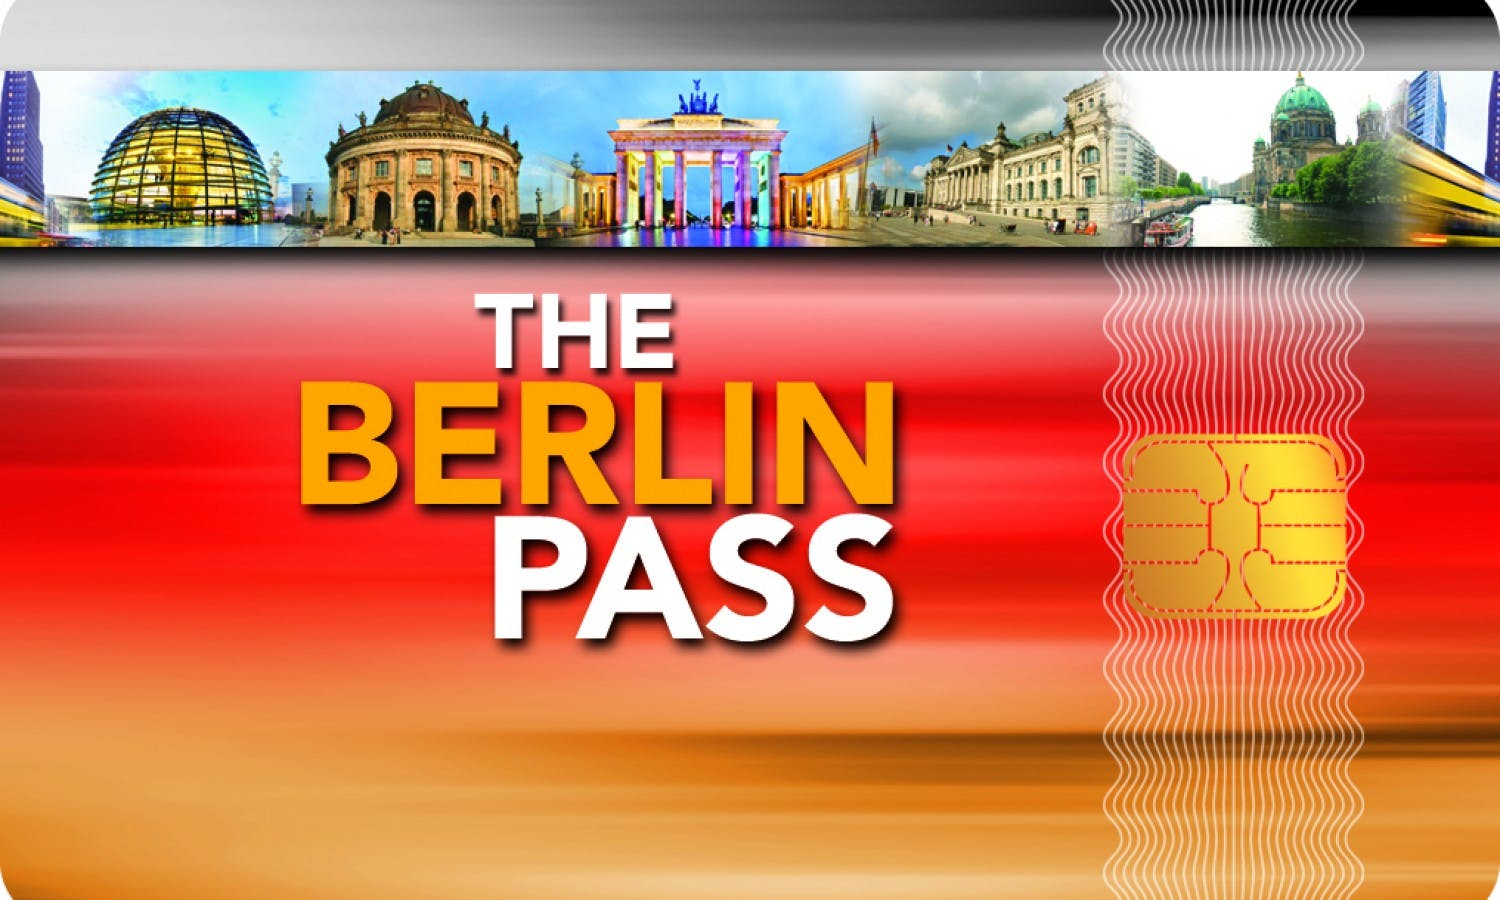 The Berlin Pass: over 60 free museums and attractions